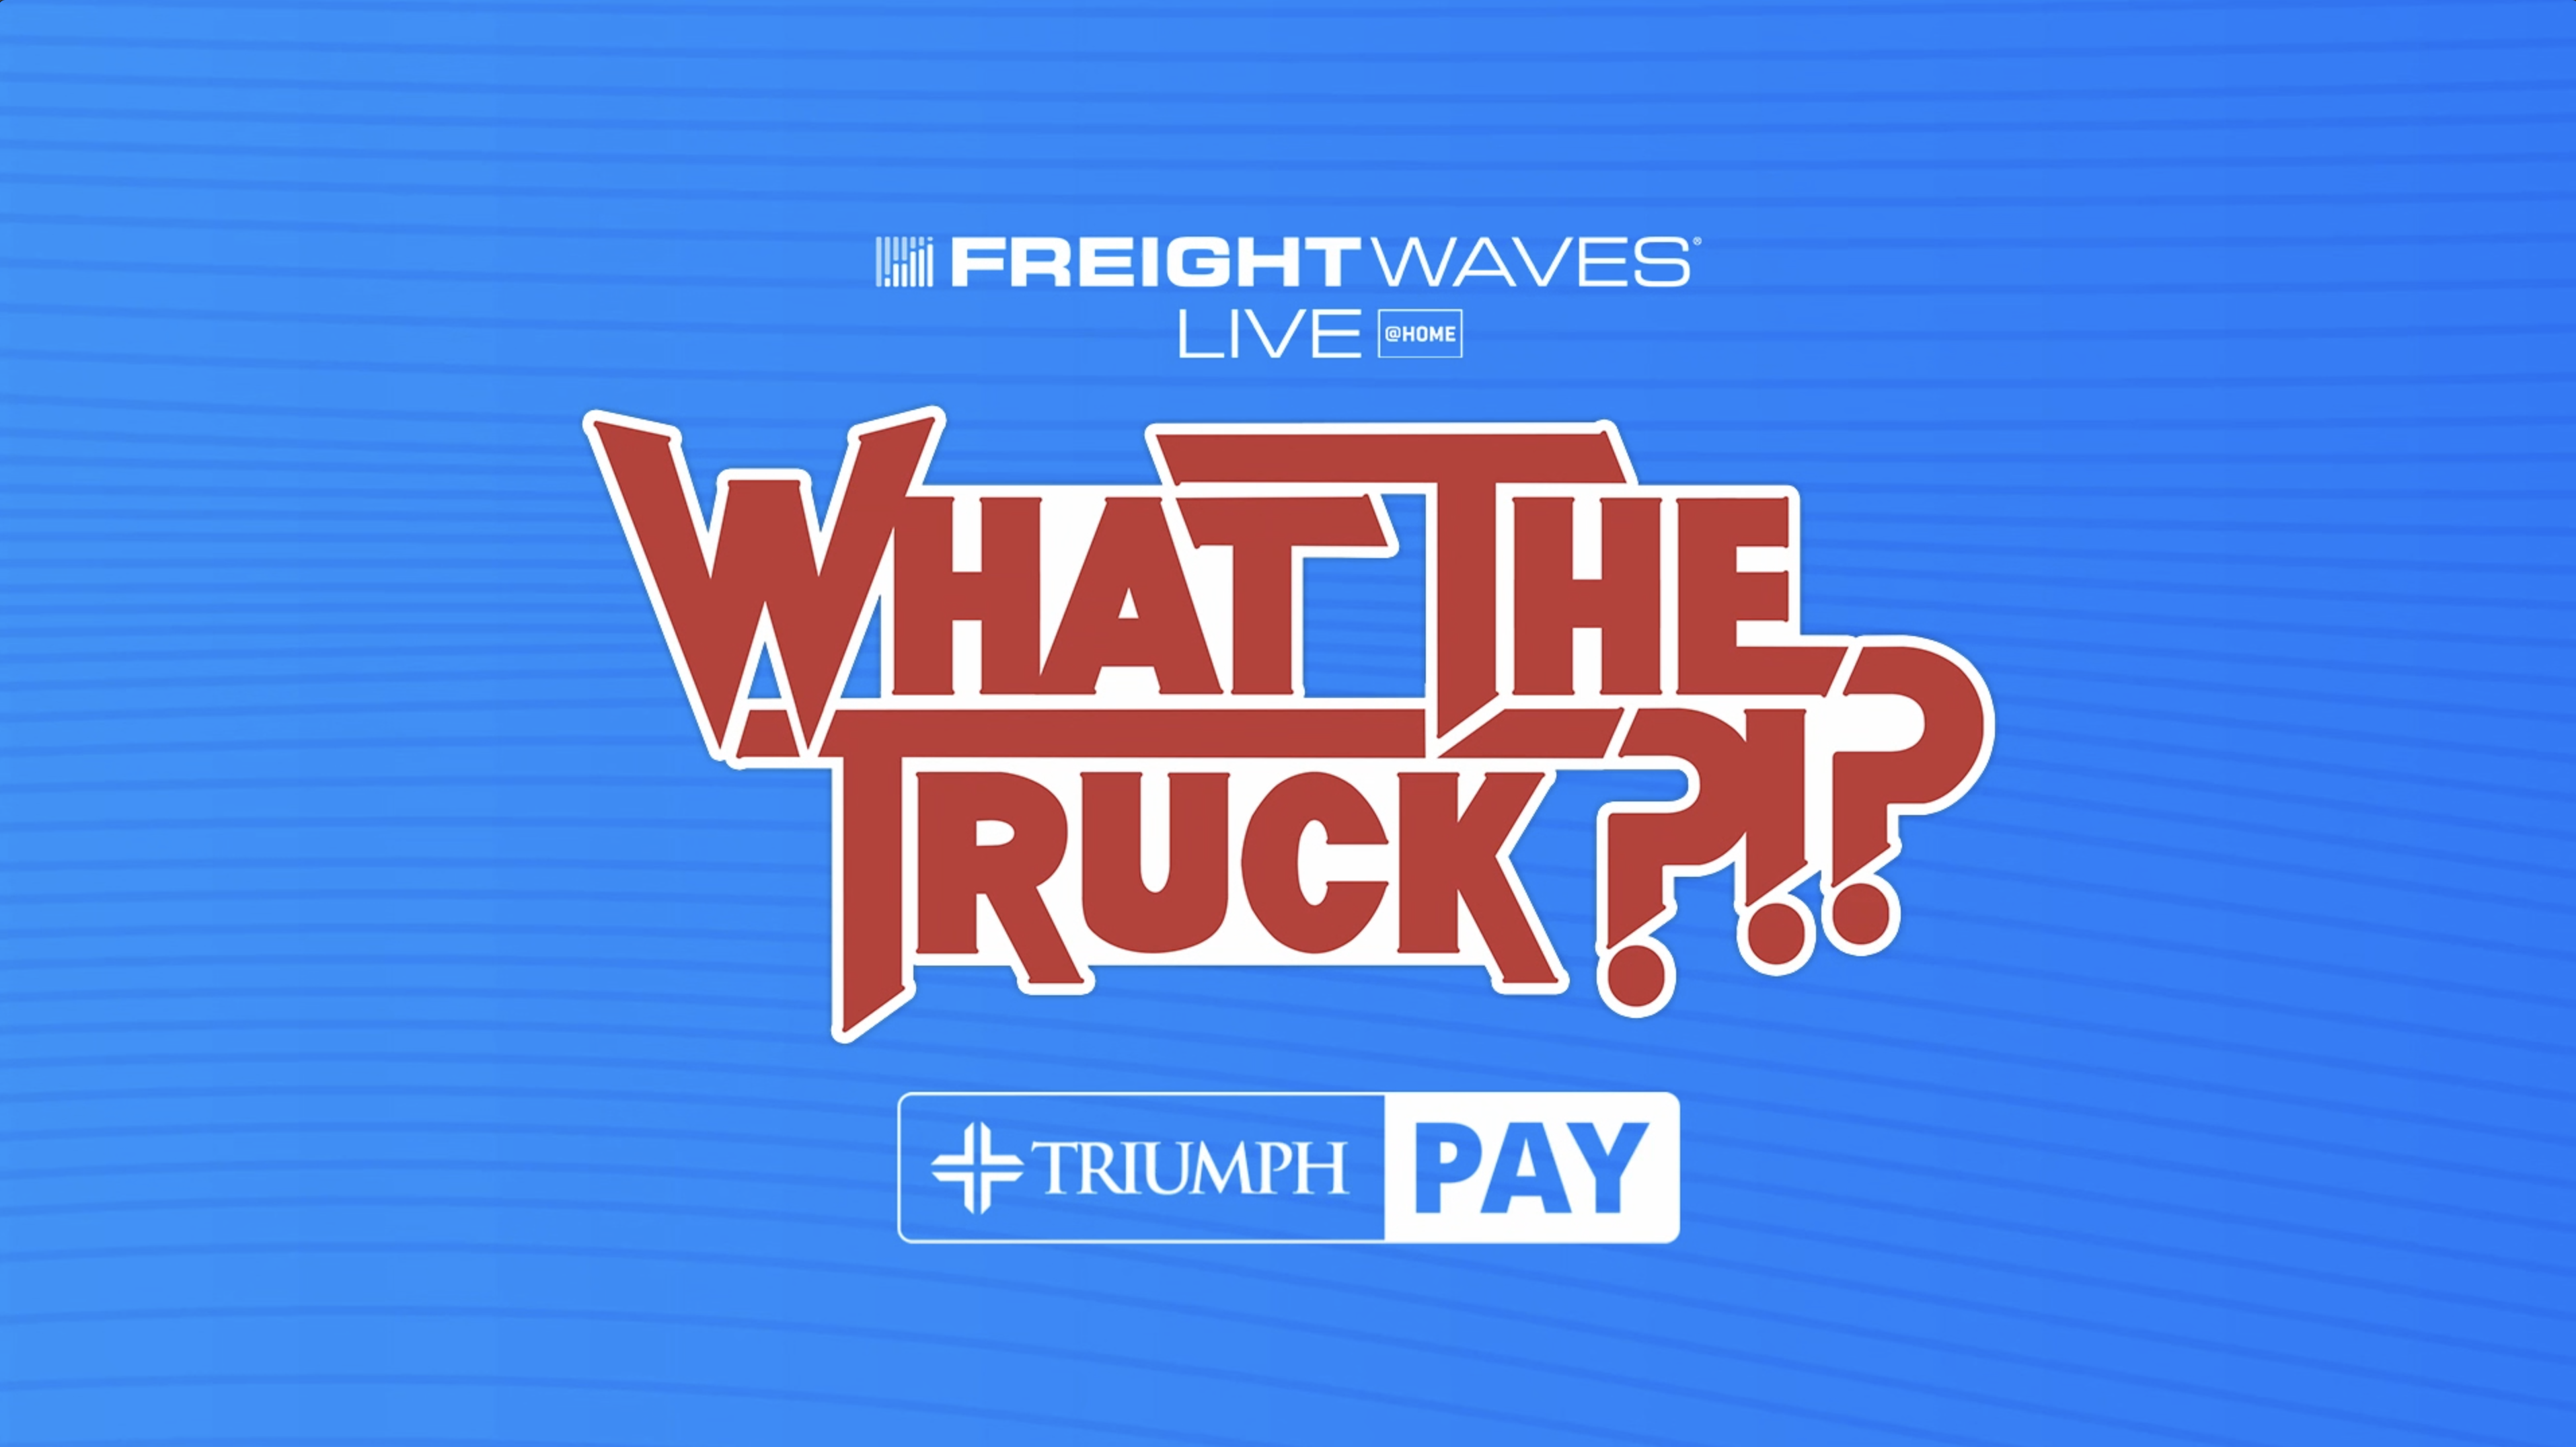 FreightWaves LIVE: Are you using tech effectively? — WHAT THE TRUCK?!?